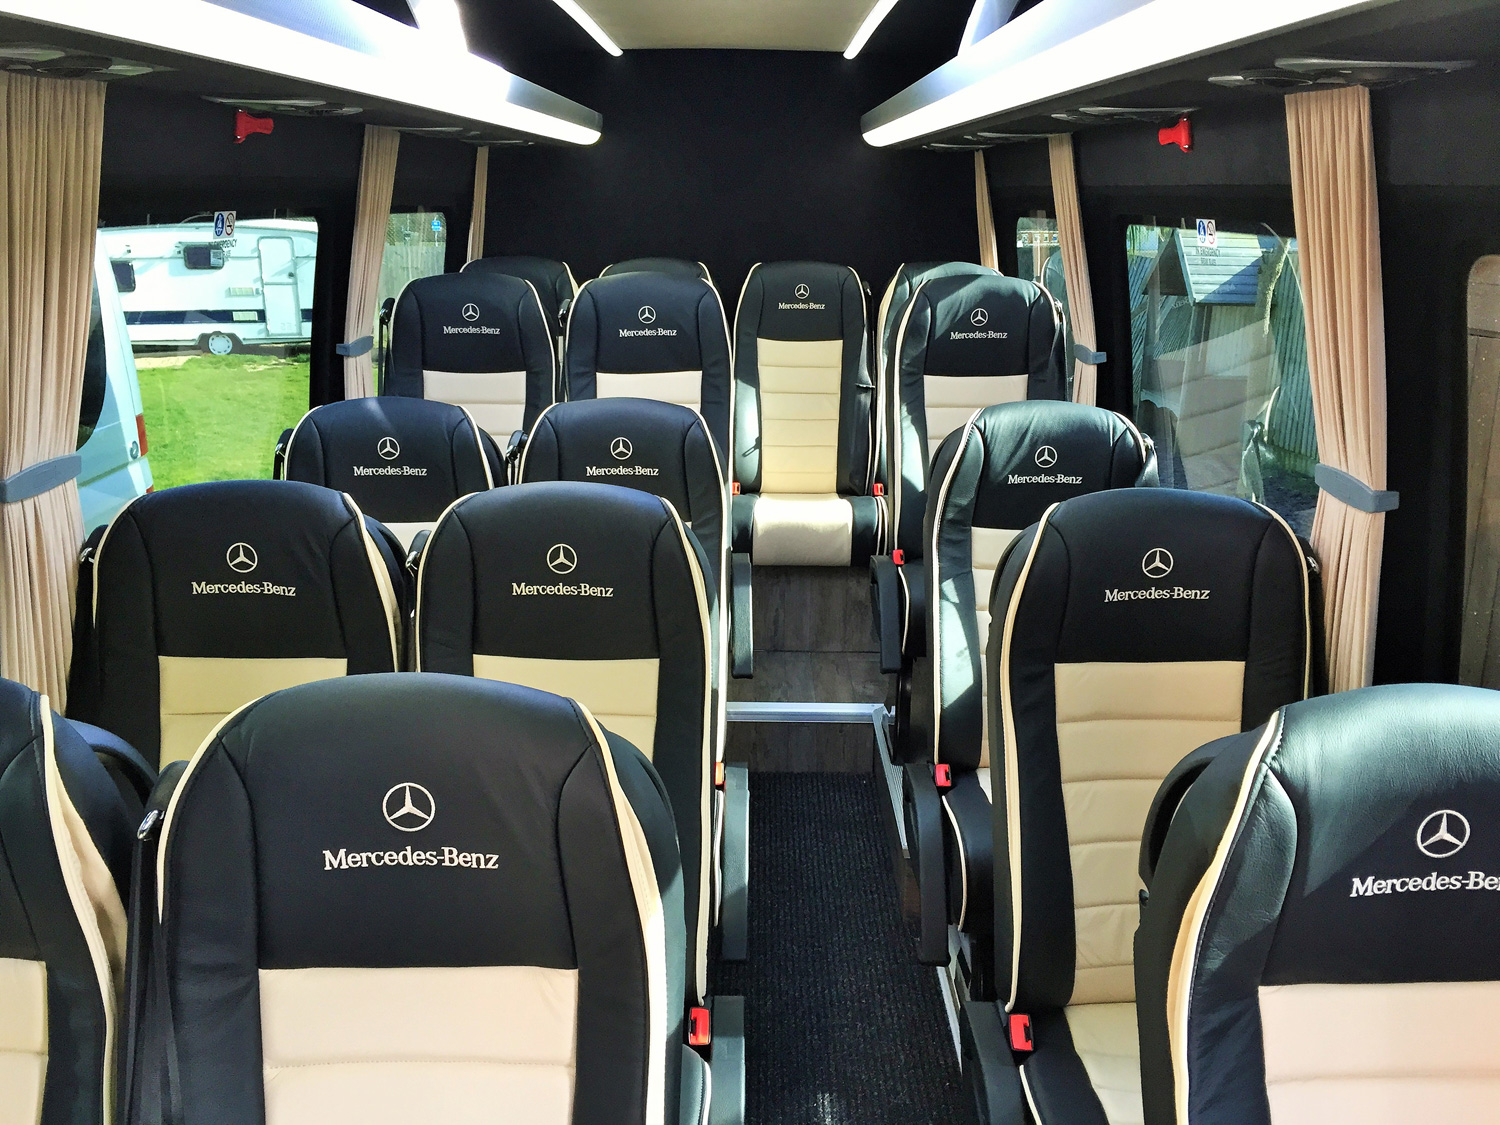 Mercedes-Benz 16 Seater Luxury Seats